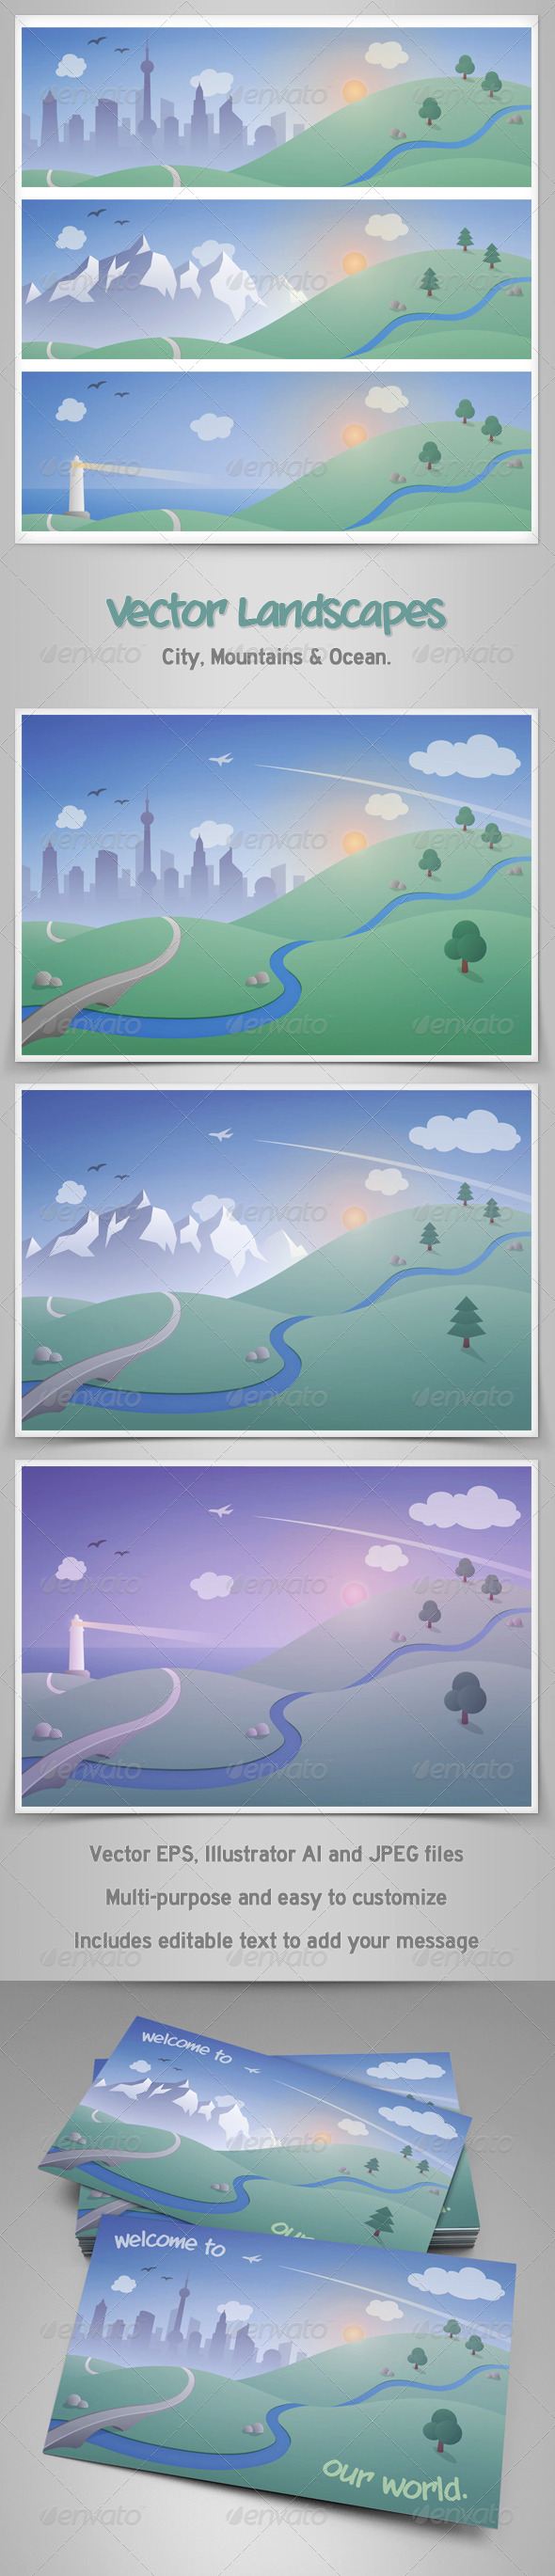 GraphicRiver Vector Landscapes with City Mountains and Ocean 5831504